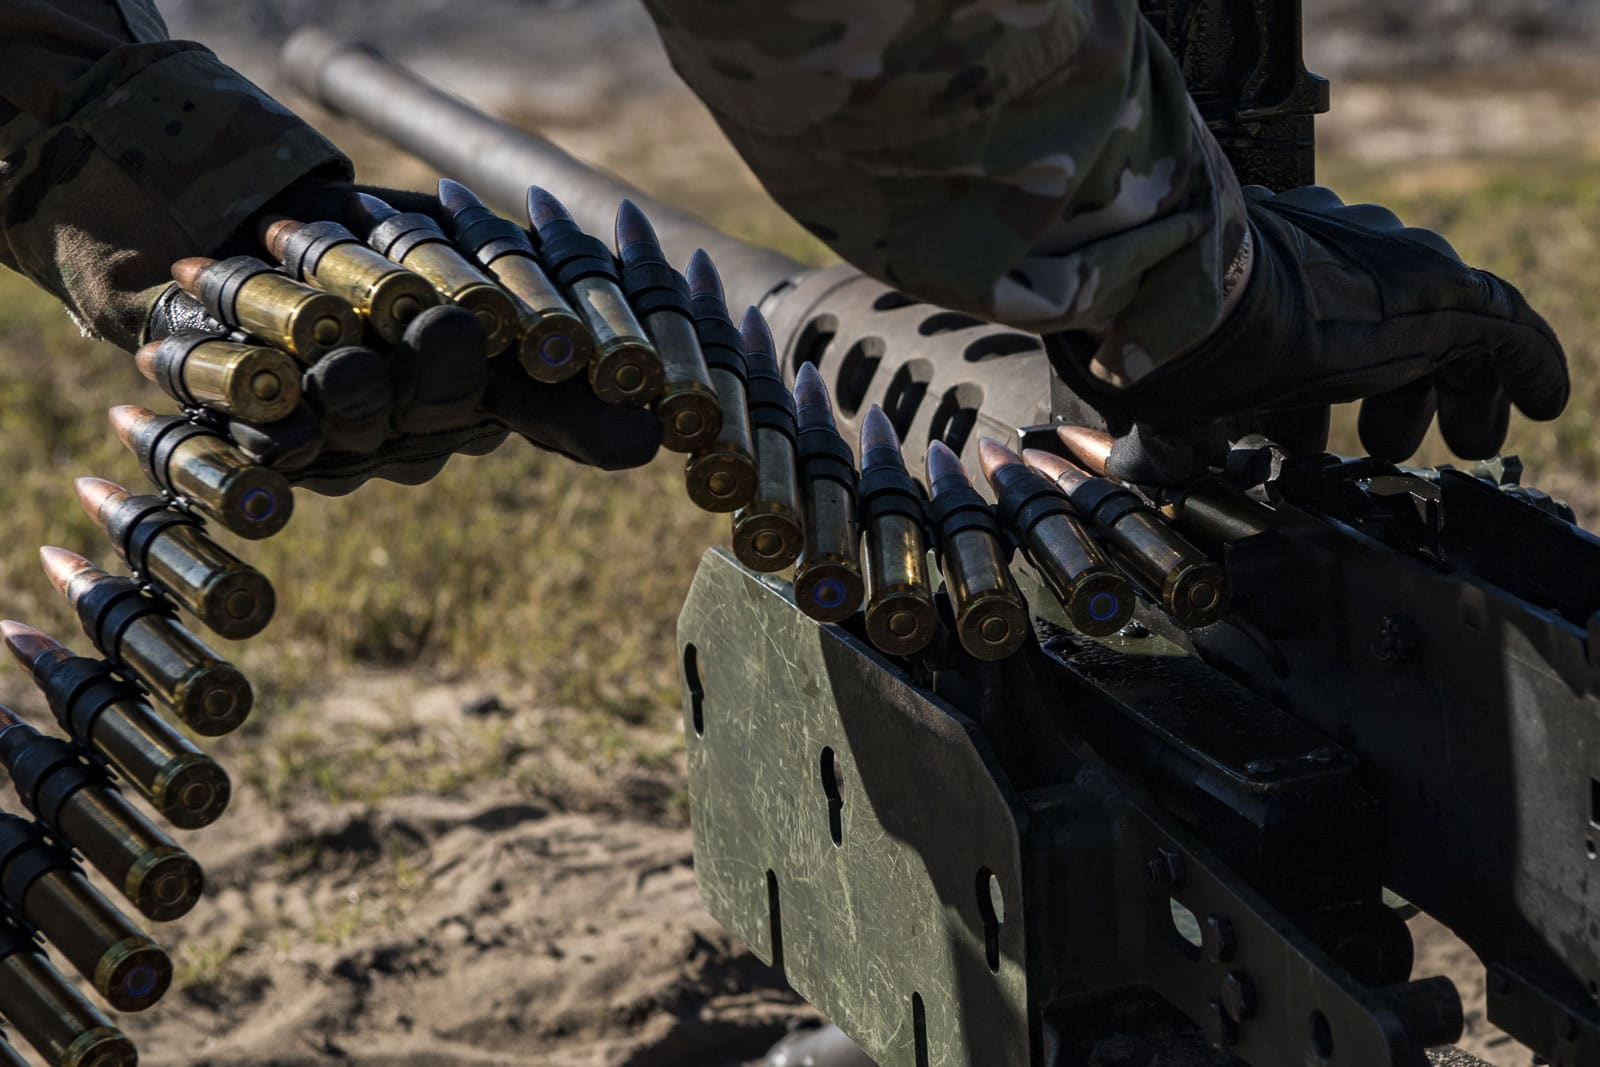 A United States Air Force Airman from the 823d Base Defense Squadron, loads a .50 Caliber M2 machine gun during a heavy weapons qualification.